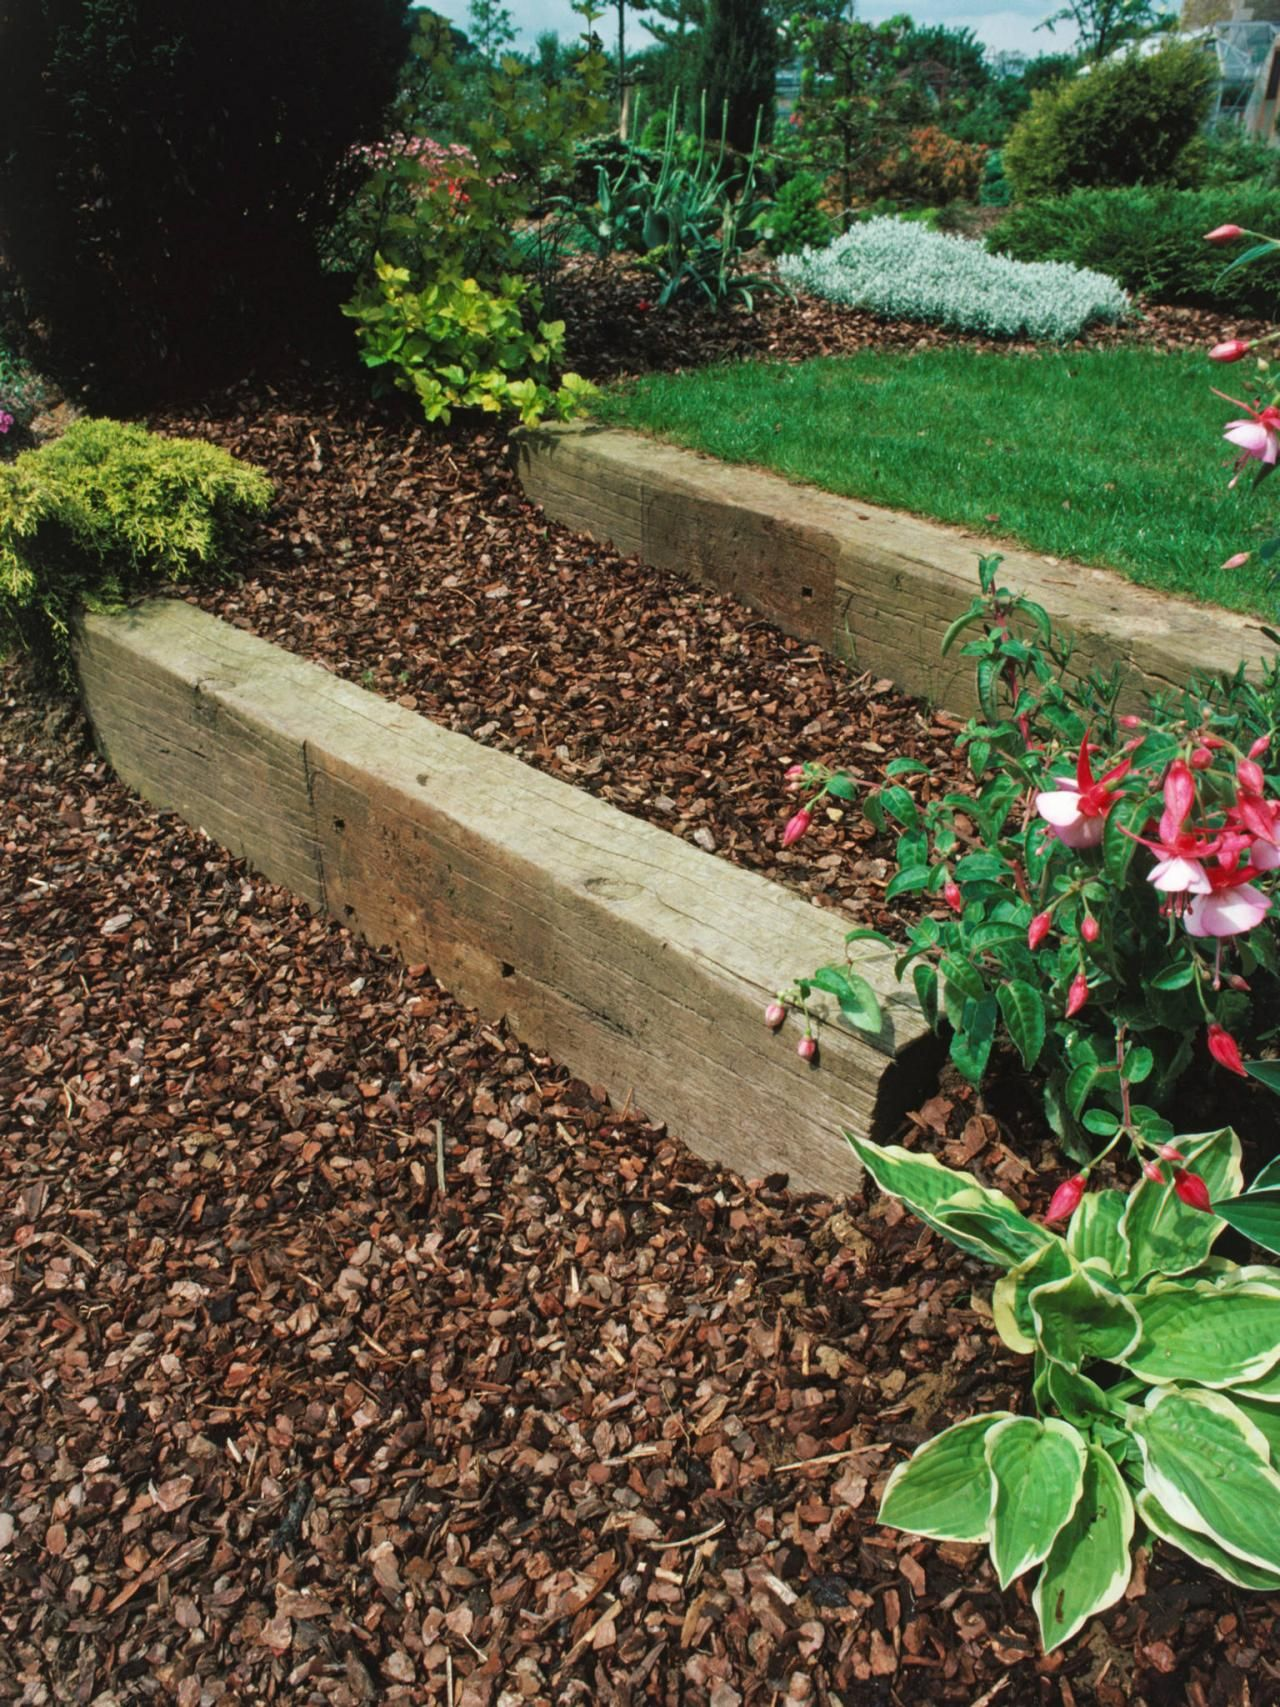 How to choose the best landscape design supplies and materials for your  next residential landscaping project - Landscaping With Railroad Ties Homes Railroad Ties Landscaping